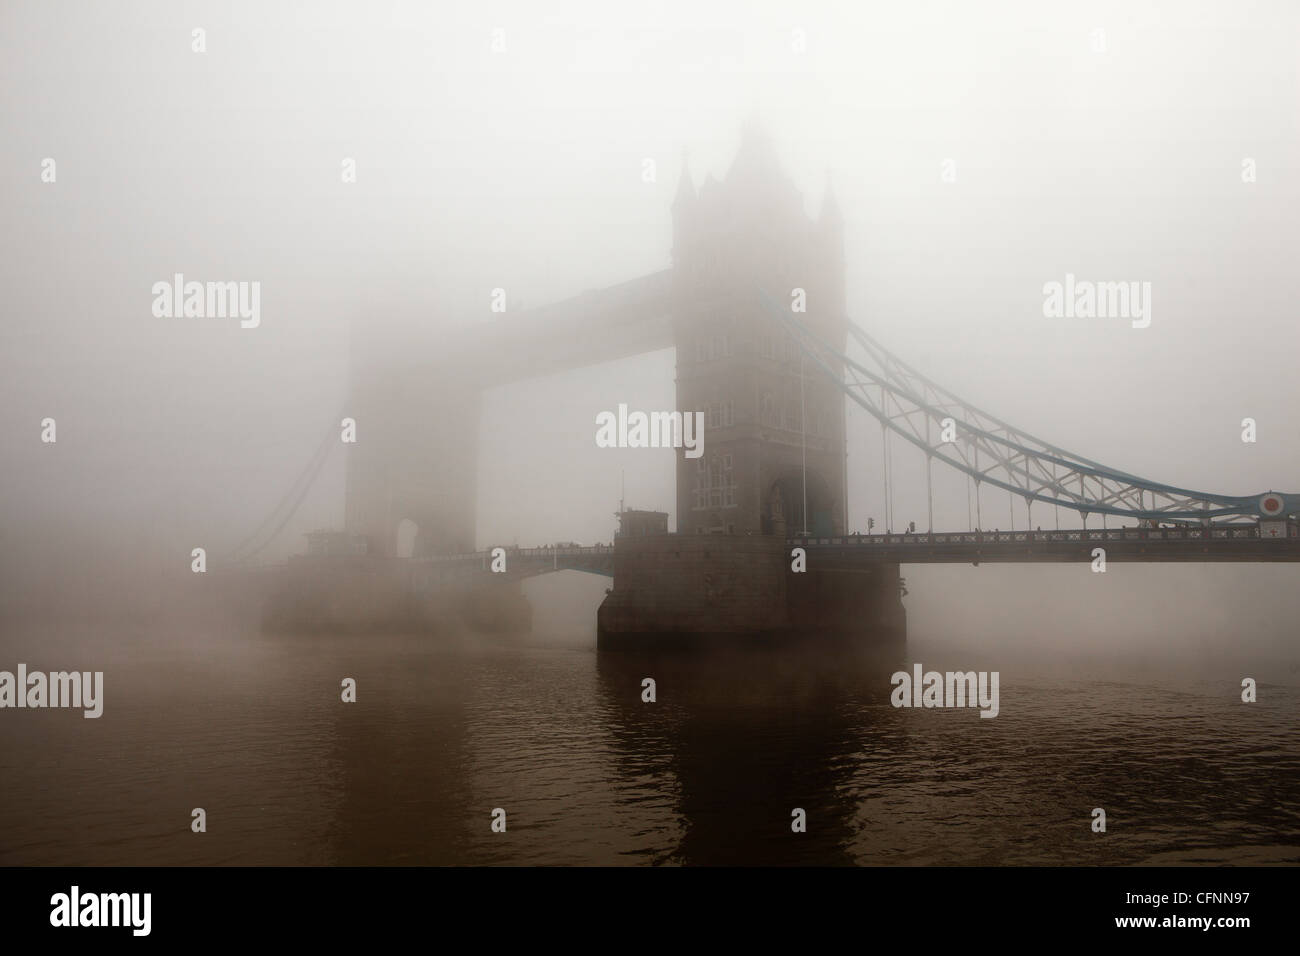 Une vue de Tower Bridge complètement couverte de brume du matin Photo Stock